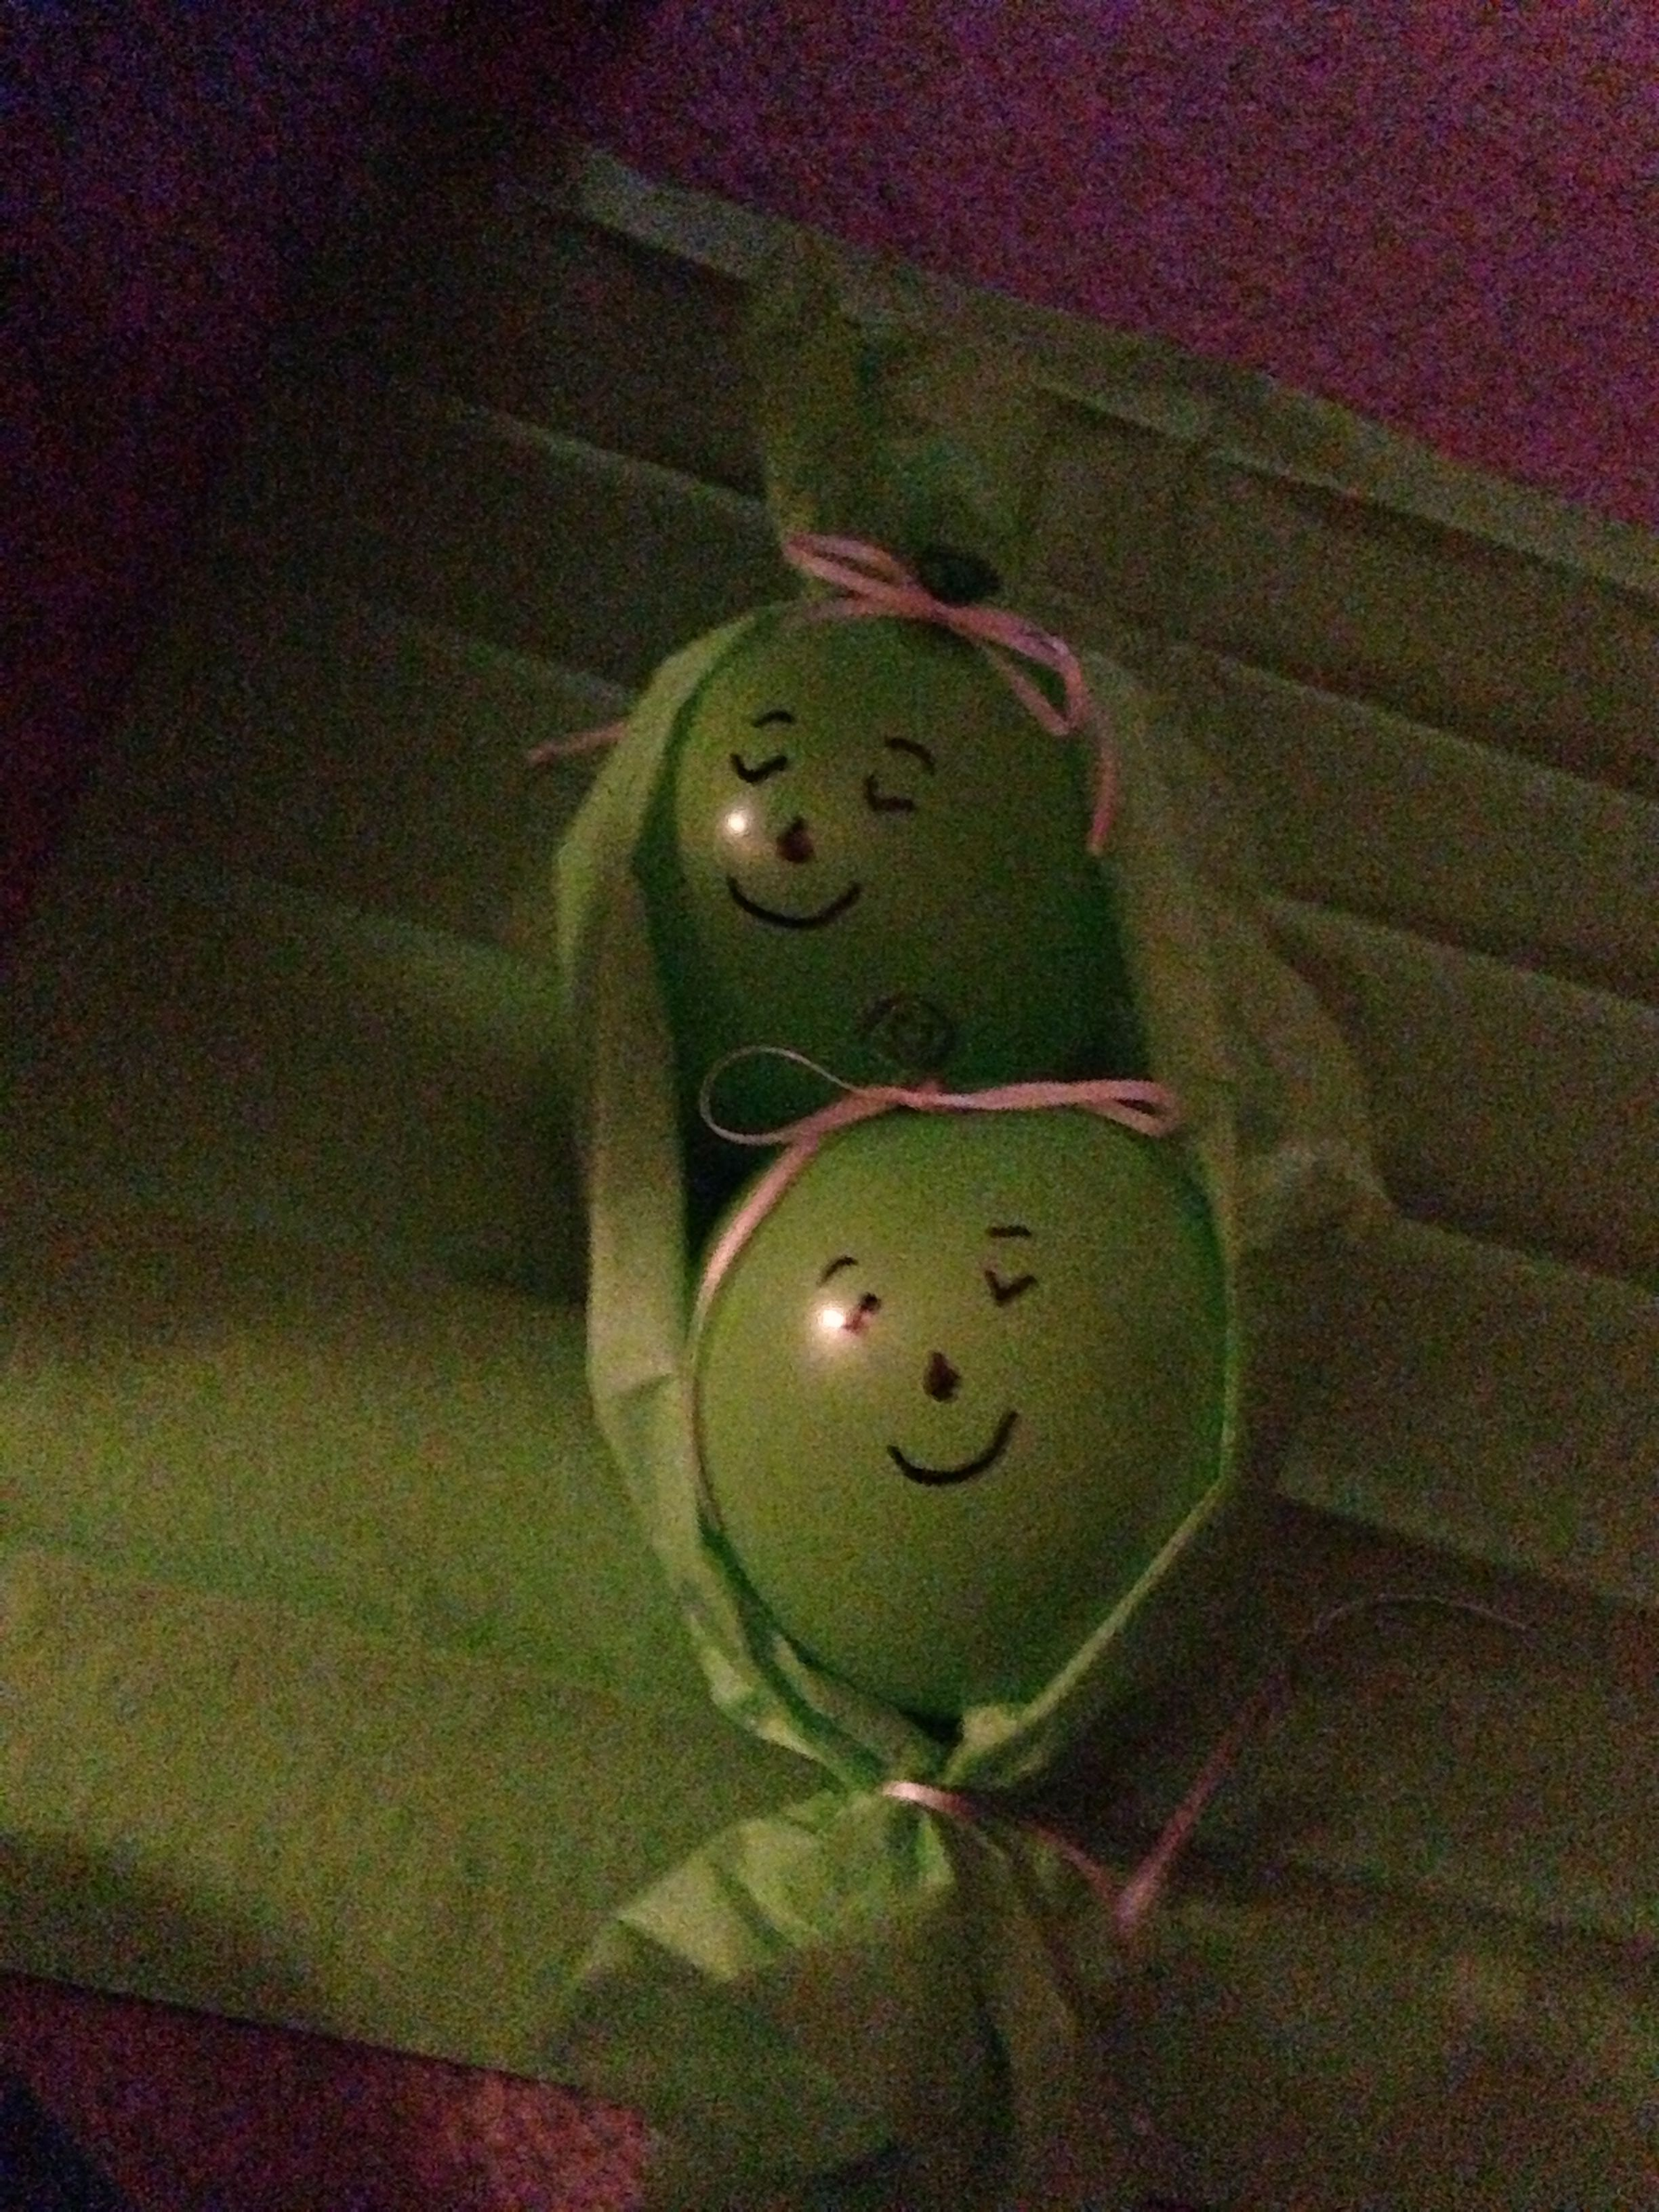 baby cookies peas in decorations shower invitations pod a decor two